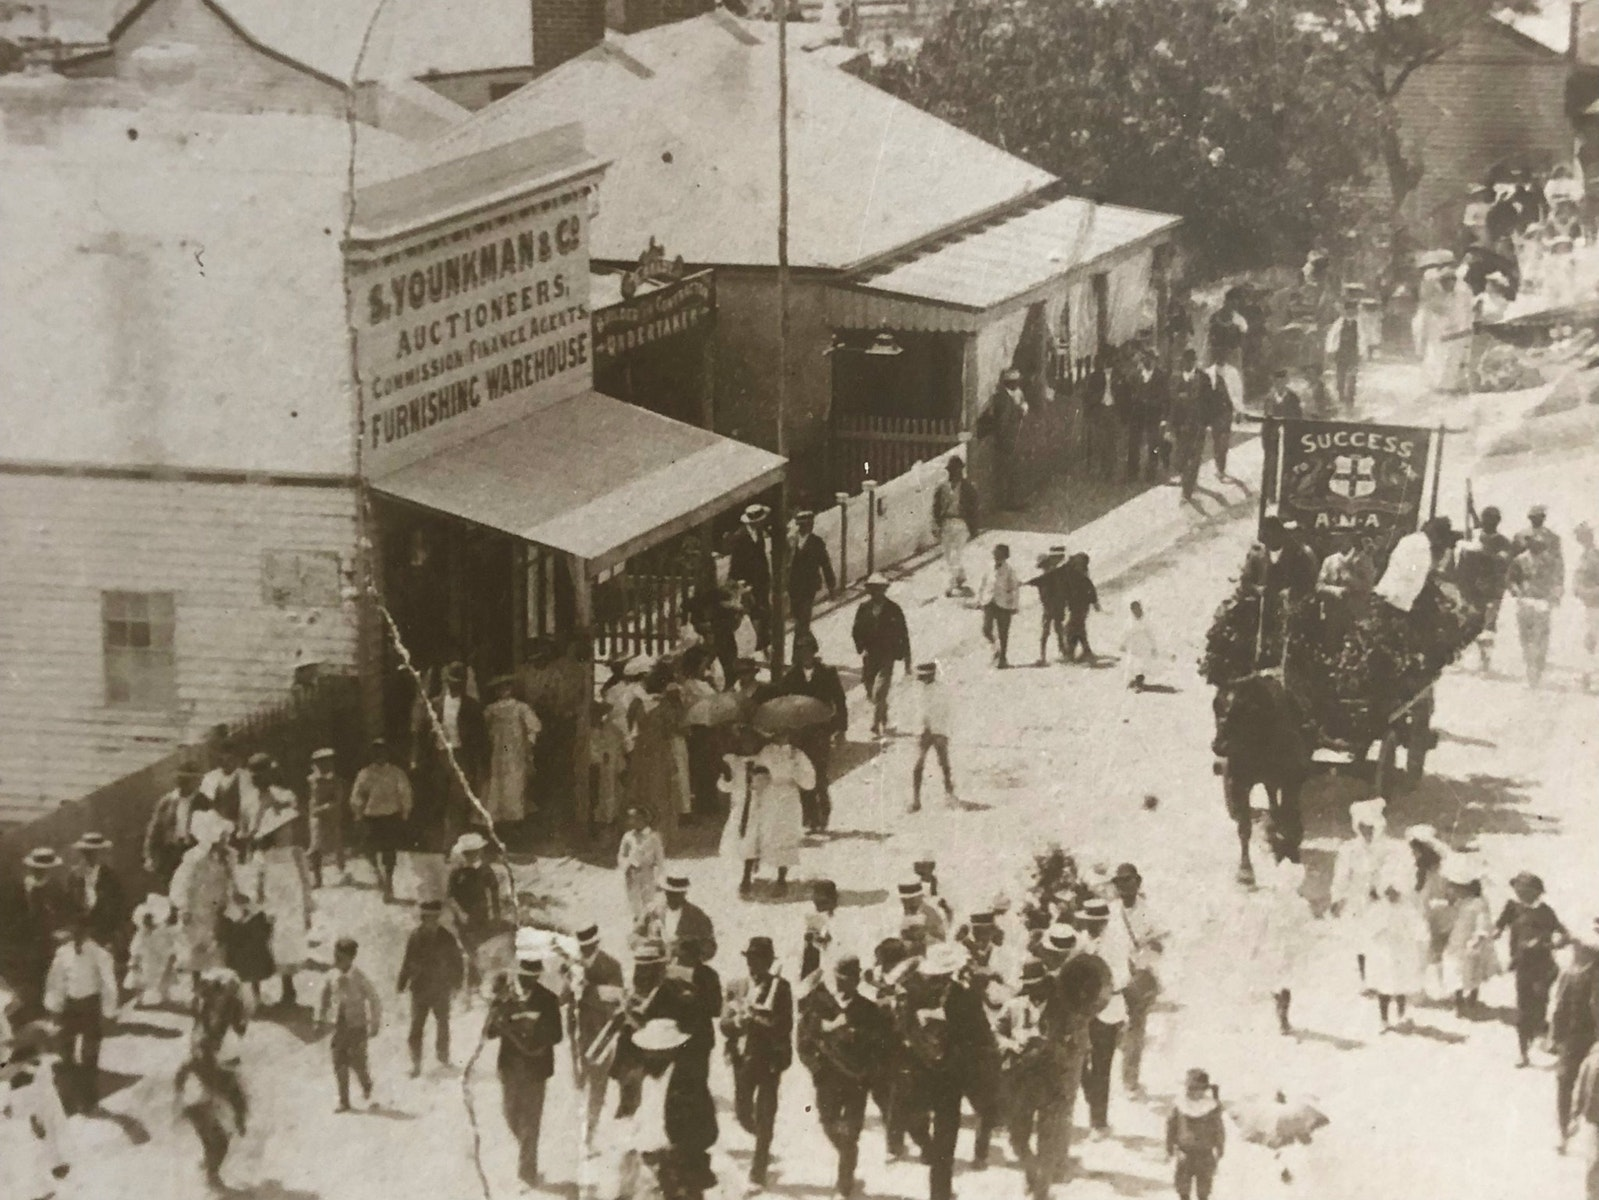 Rutherglen Main Street in the early 1900's